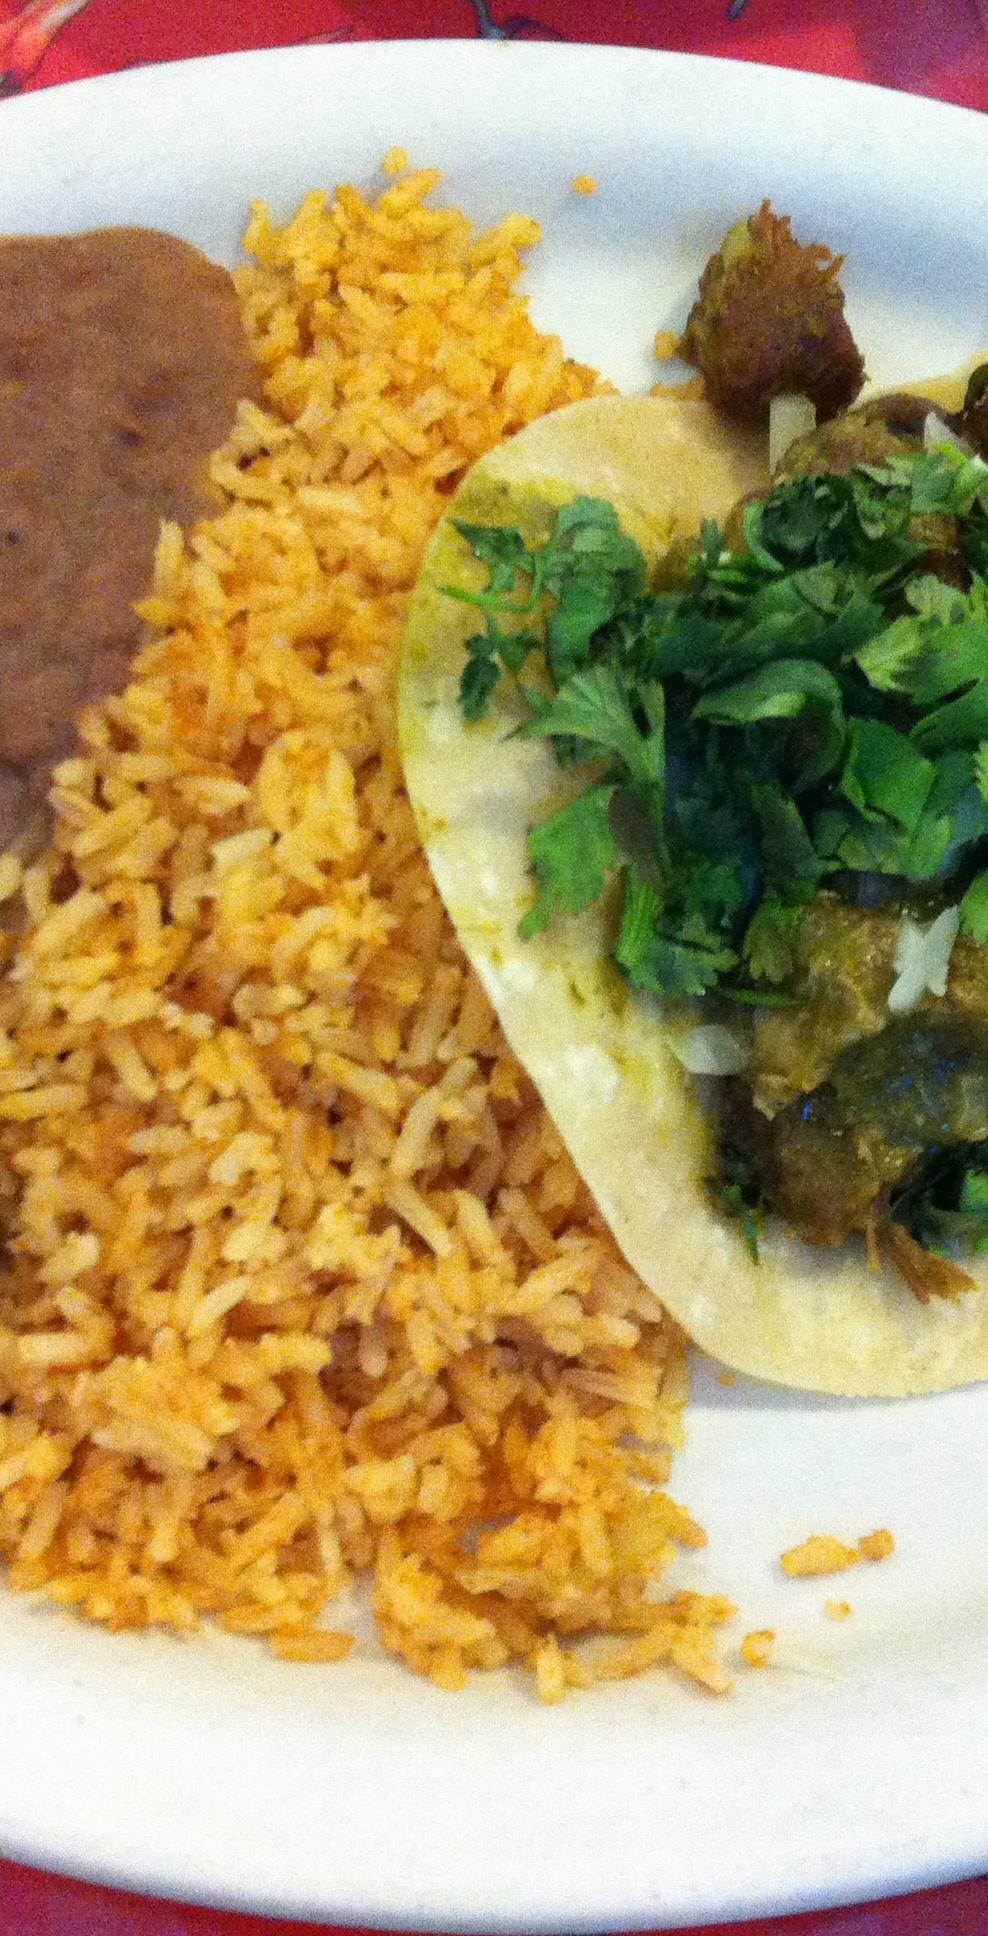 Benito's Authentic Mexican Food image 5